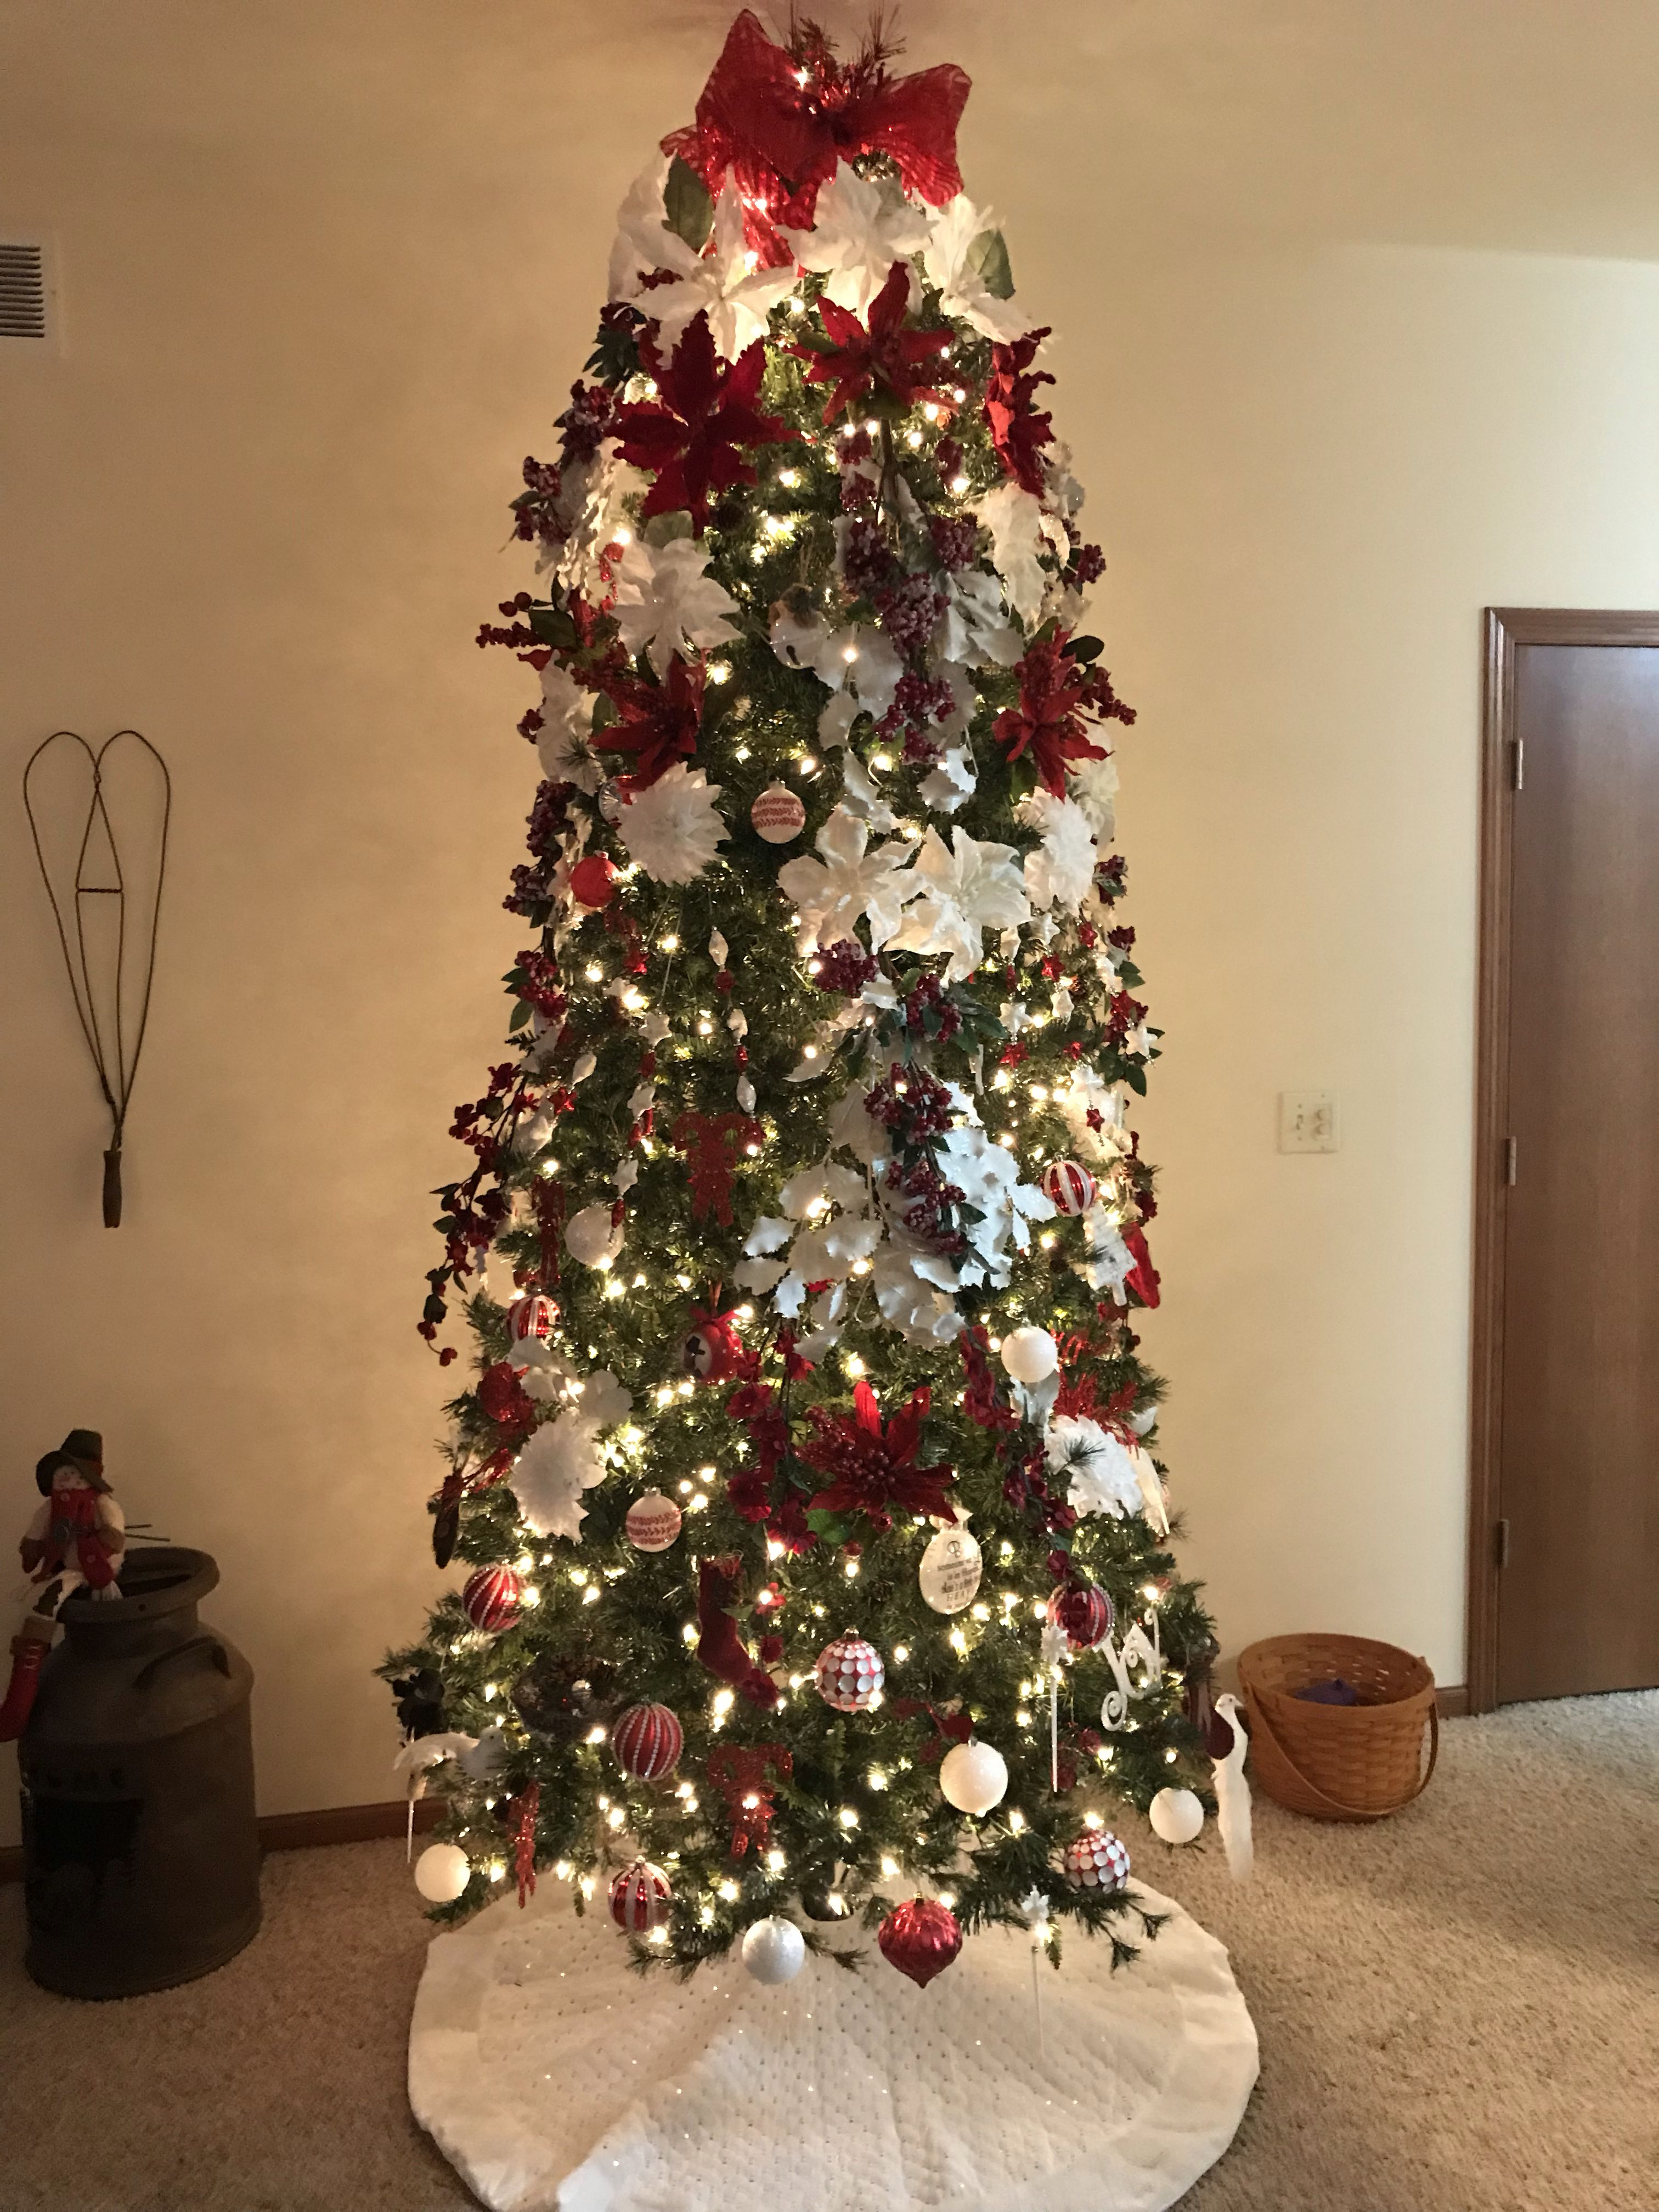 Tree Decorated With Berries White Holly Red An White Poinsettias White Chrysanthemums An Red An White White Ornaments Tree Decorations White Chrysanthemum